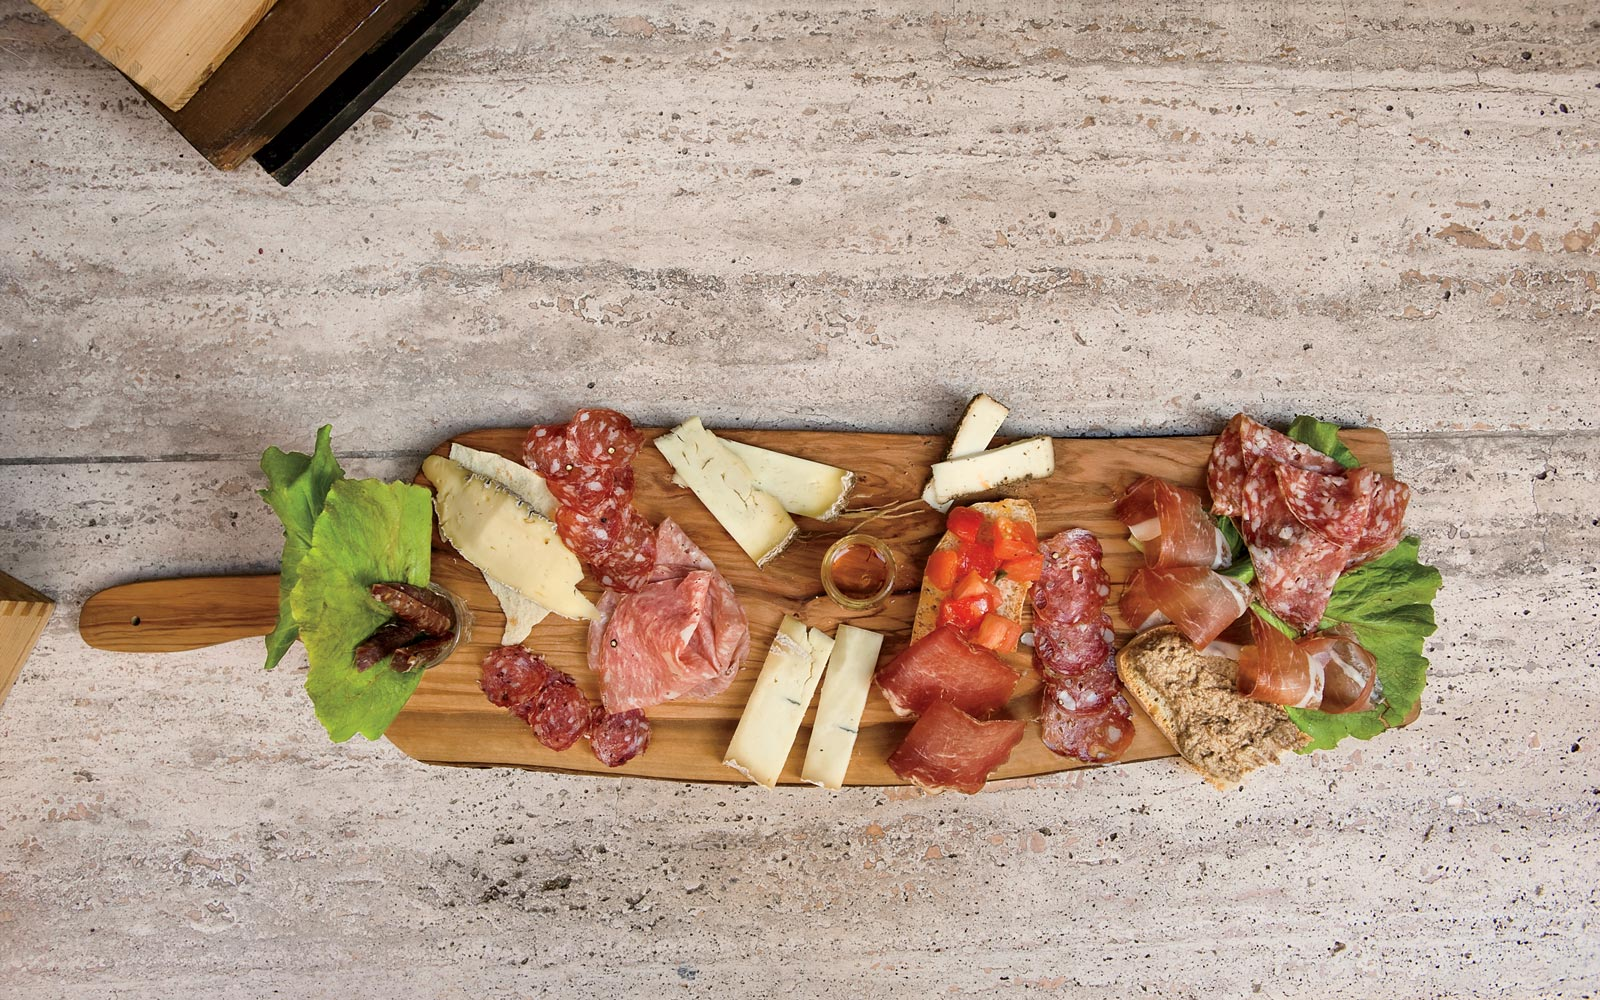 Meats and cheese at Il Bacchino restaurant, in Italy